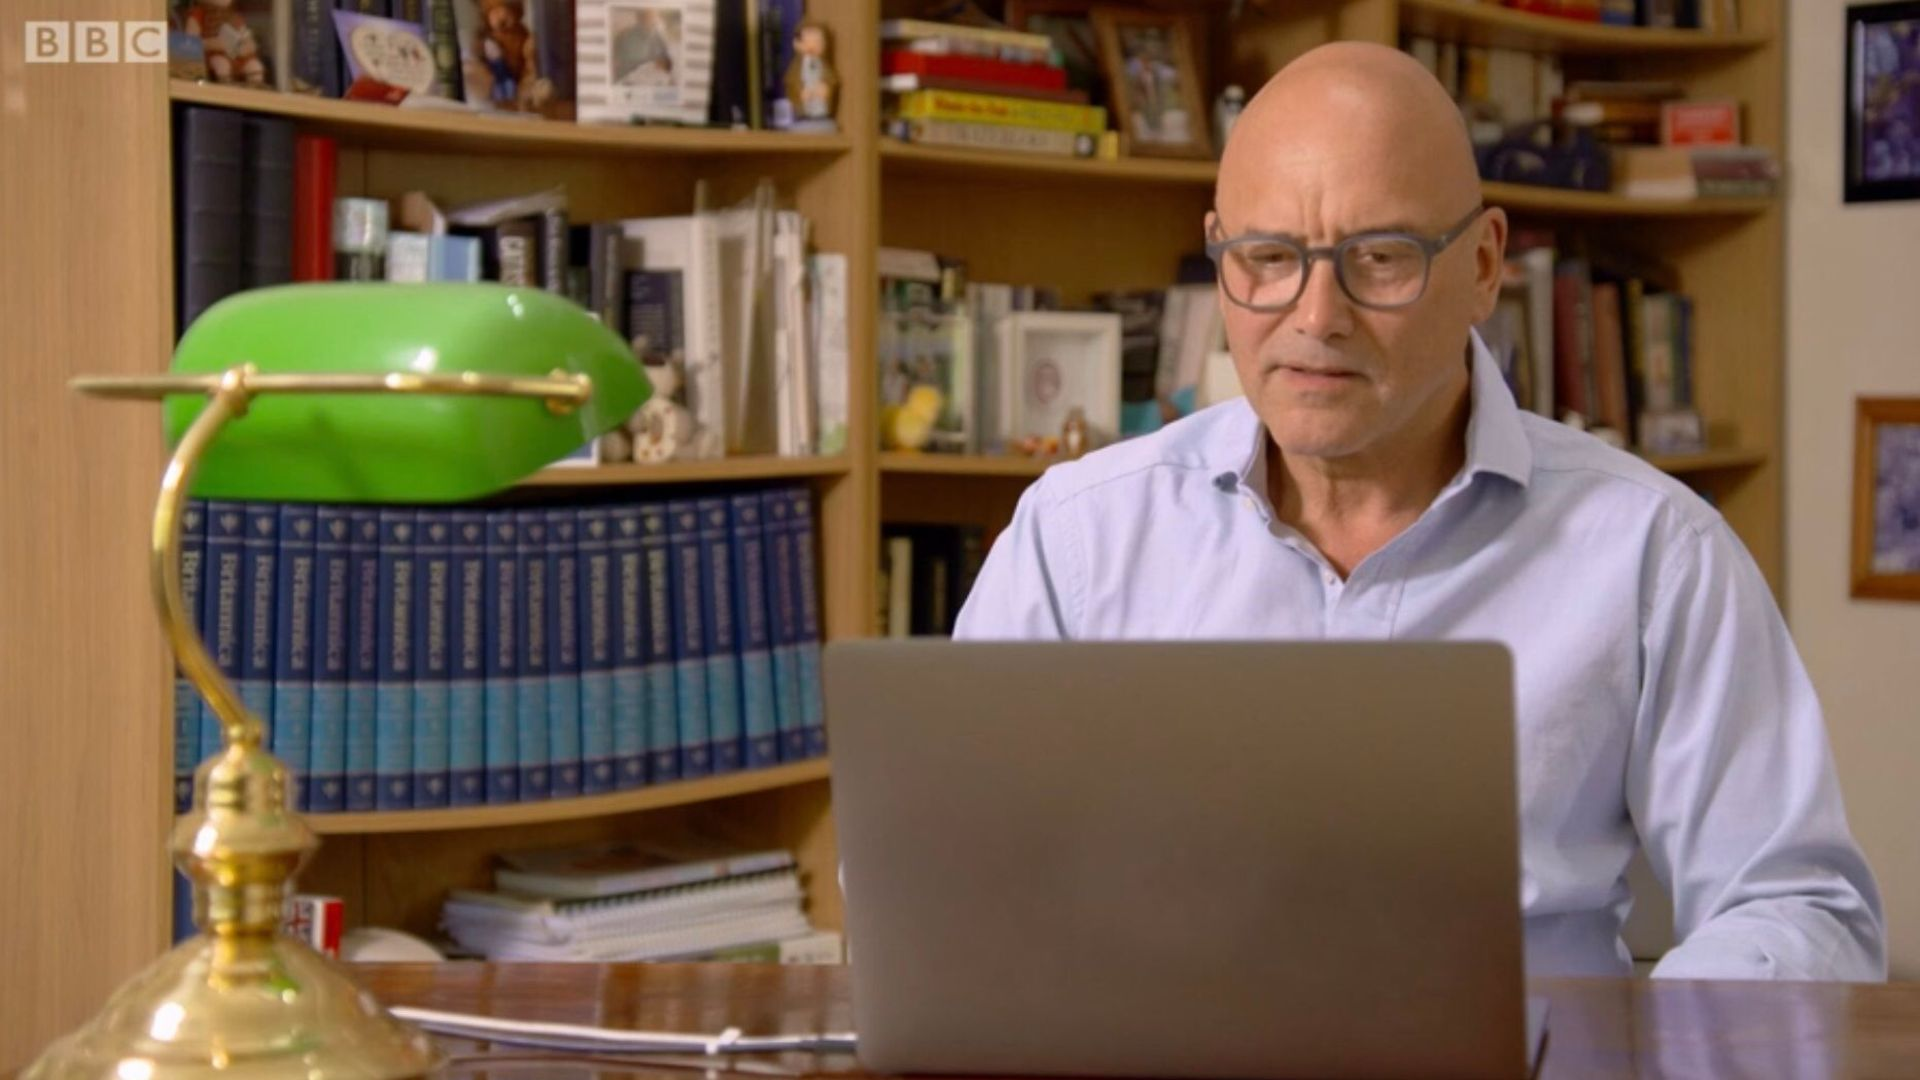 Gregg Wallace's buckling bookshelf attracted plenty of attention and comment - Credit: BBC